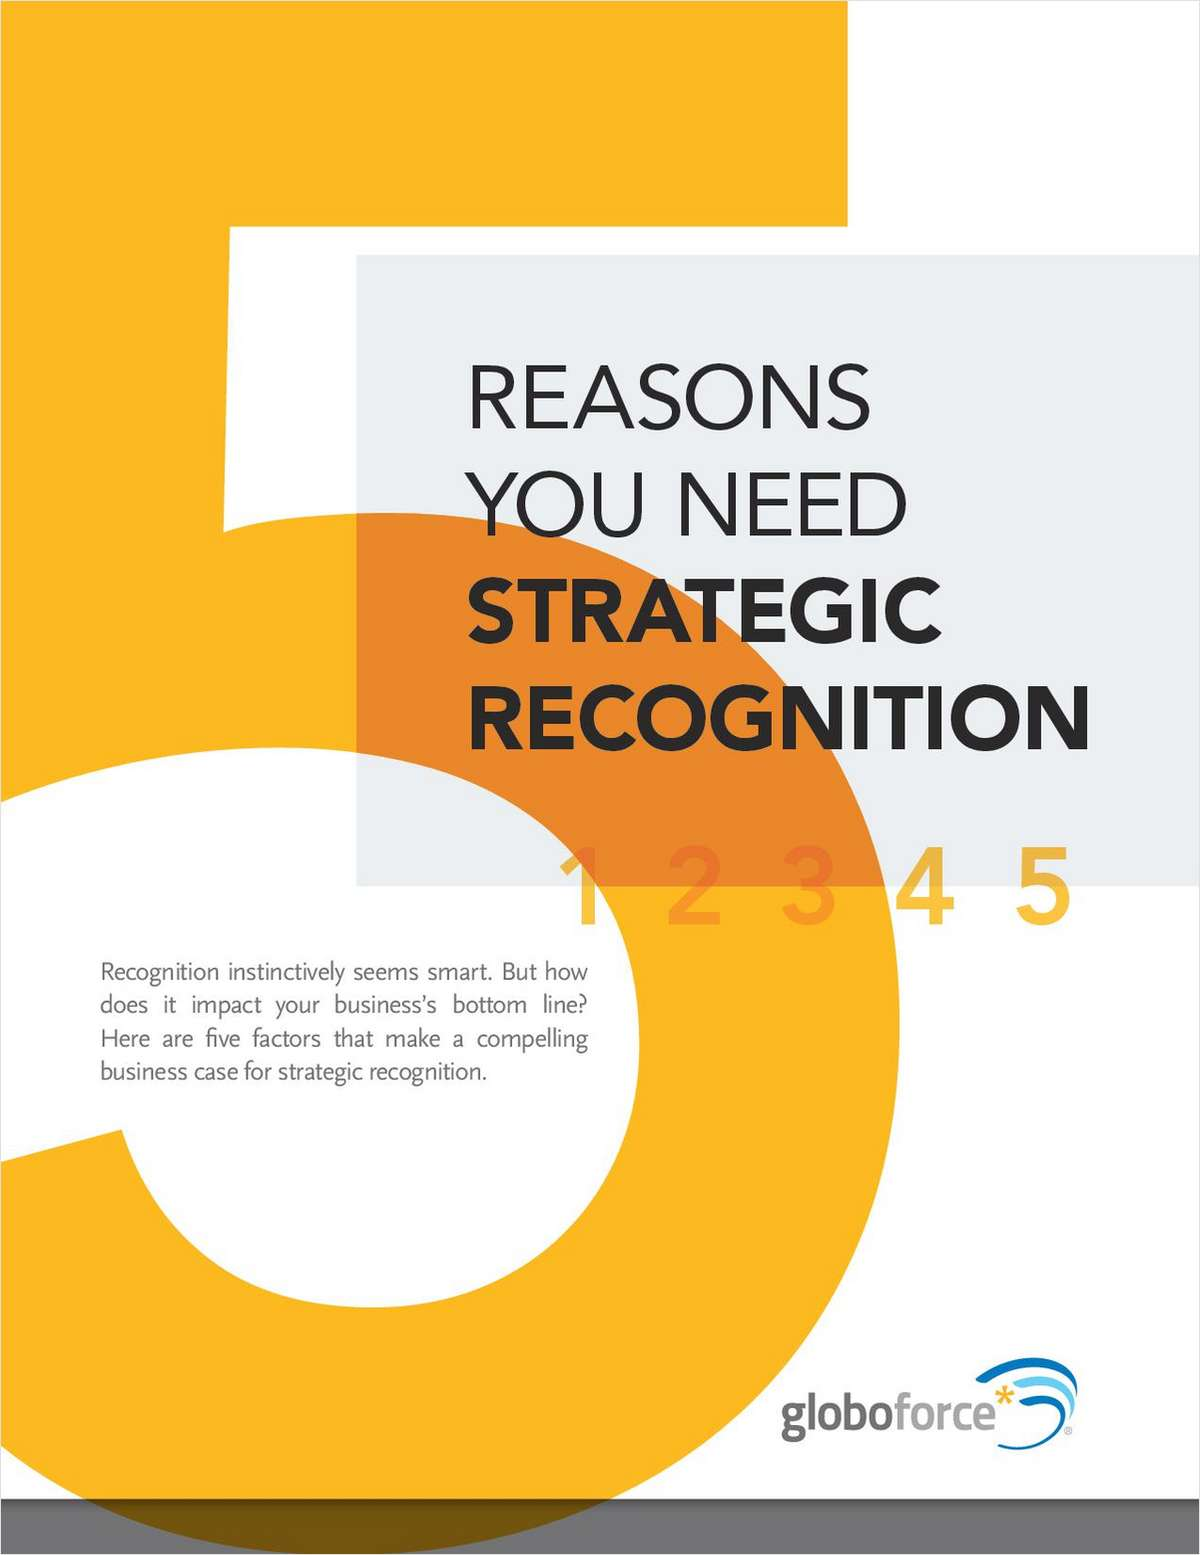 5 Reasons You Need Strategic Recognition